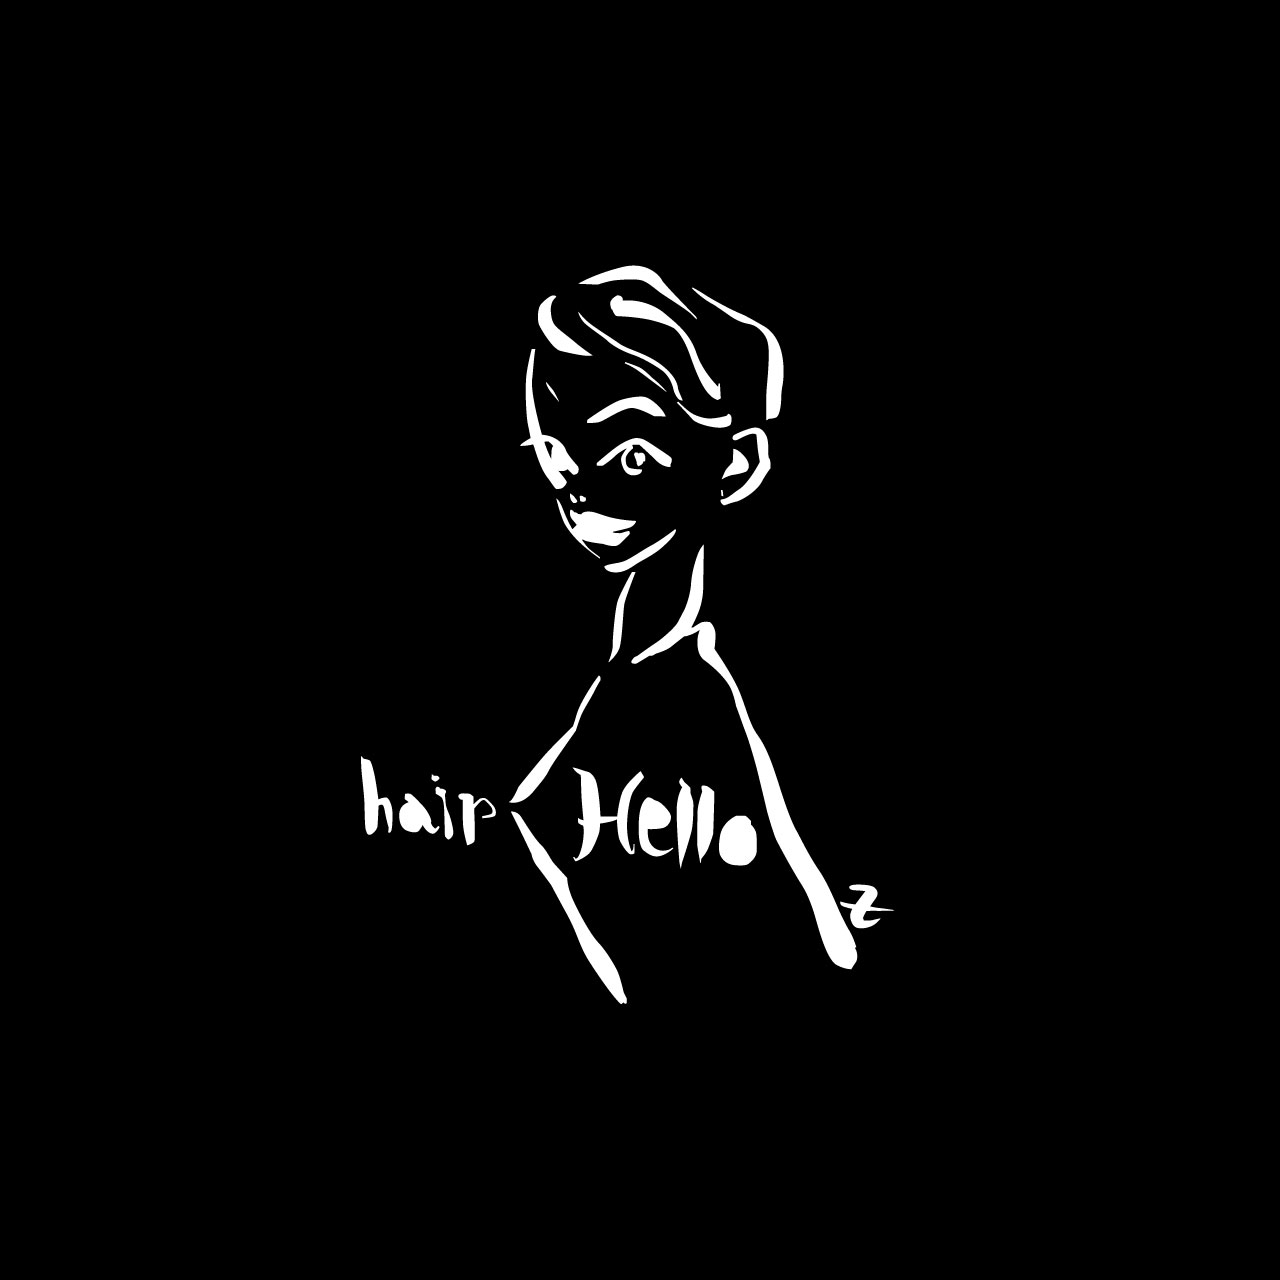 hair Hello logo